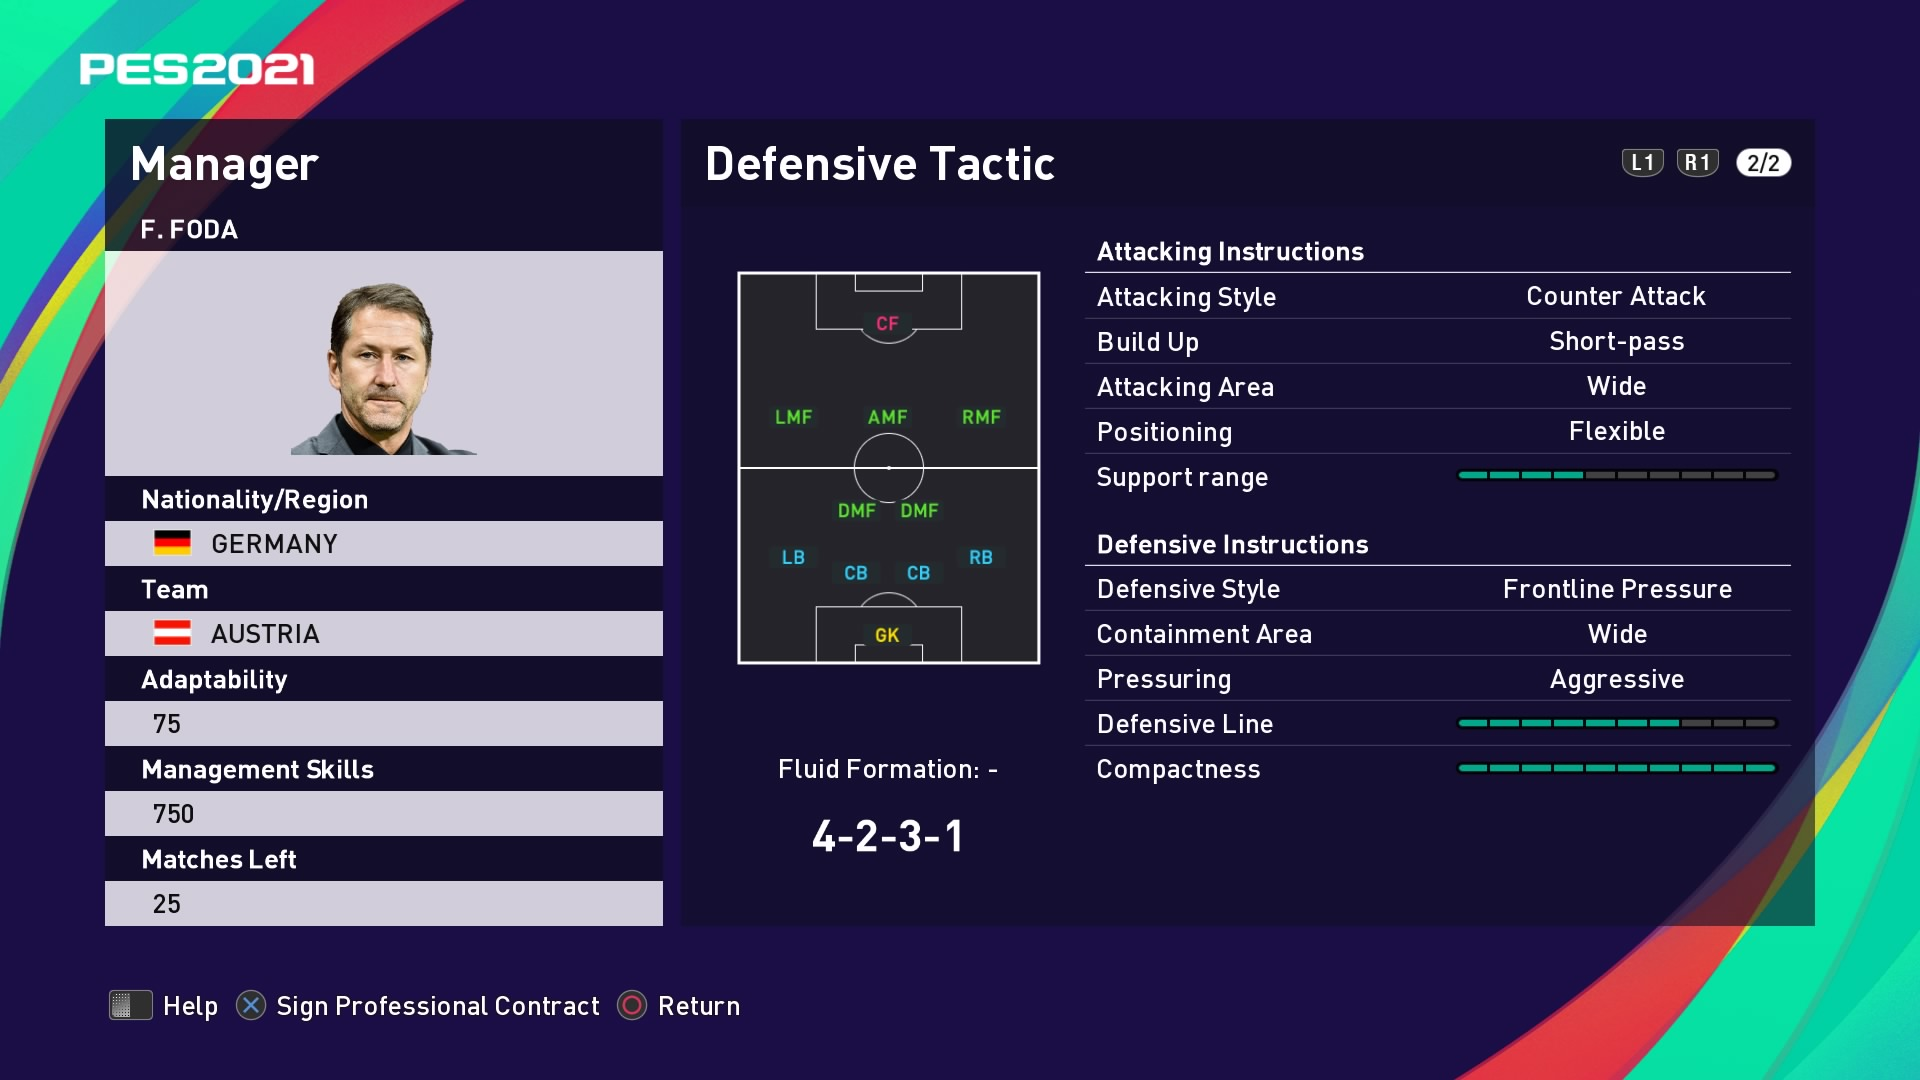 F. Foda (Franco Foda) Defensive Tactic in PES 2021 myClub